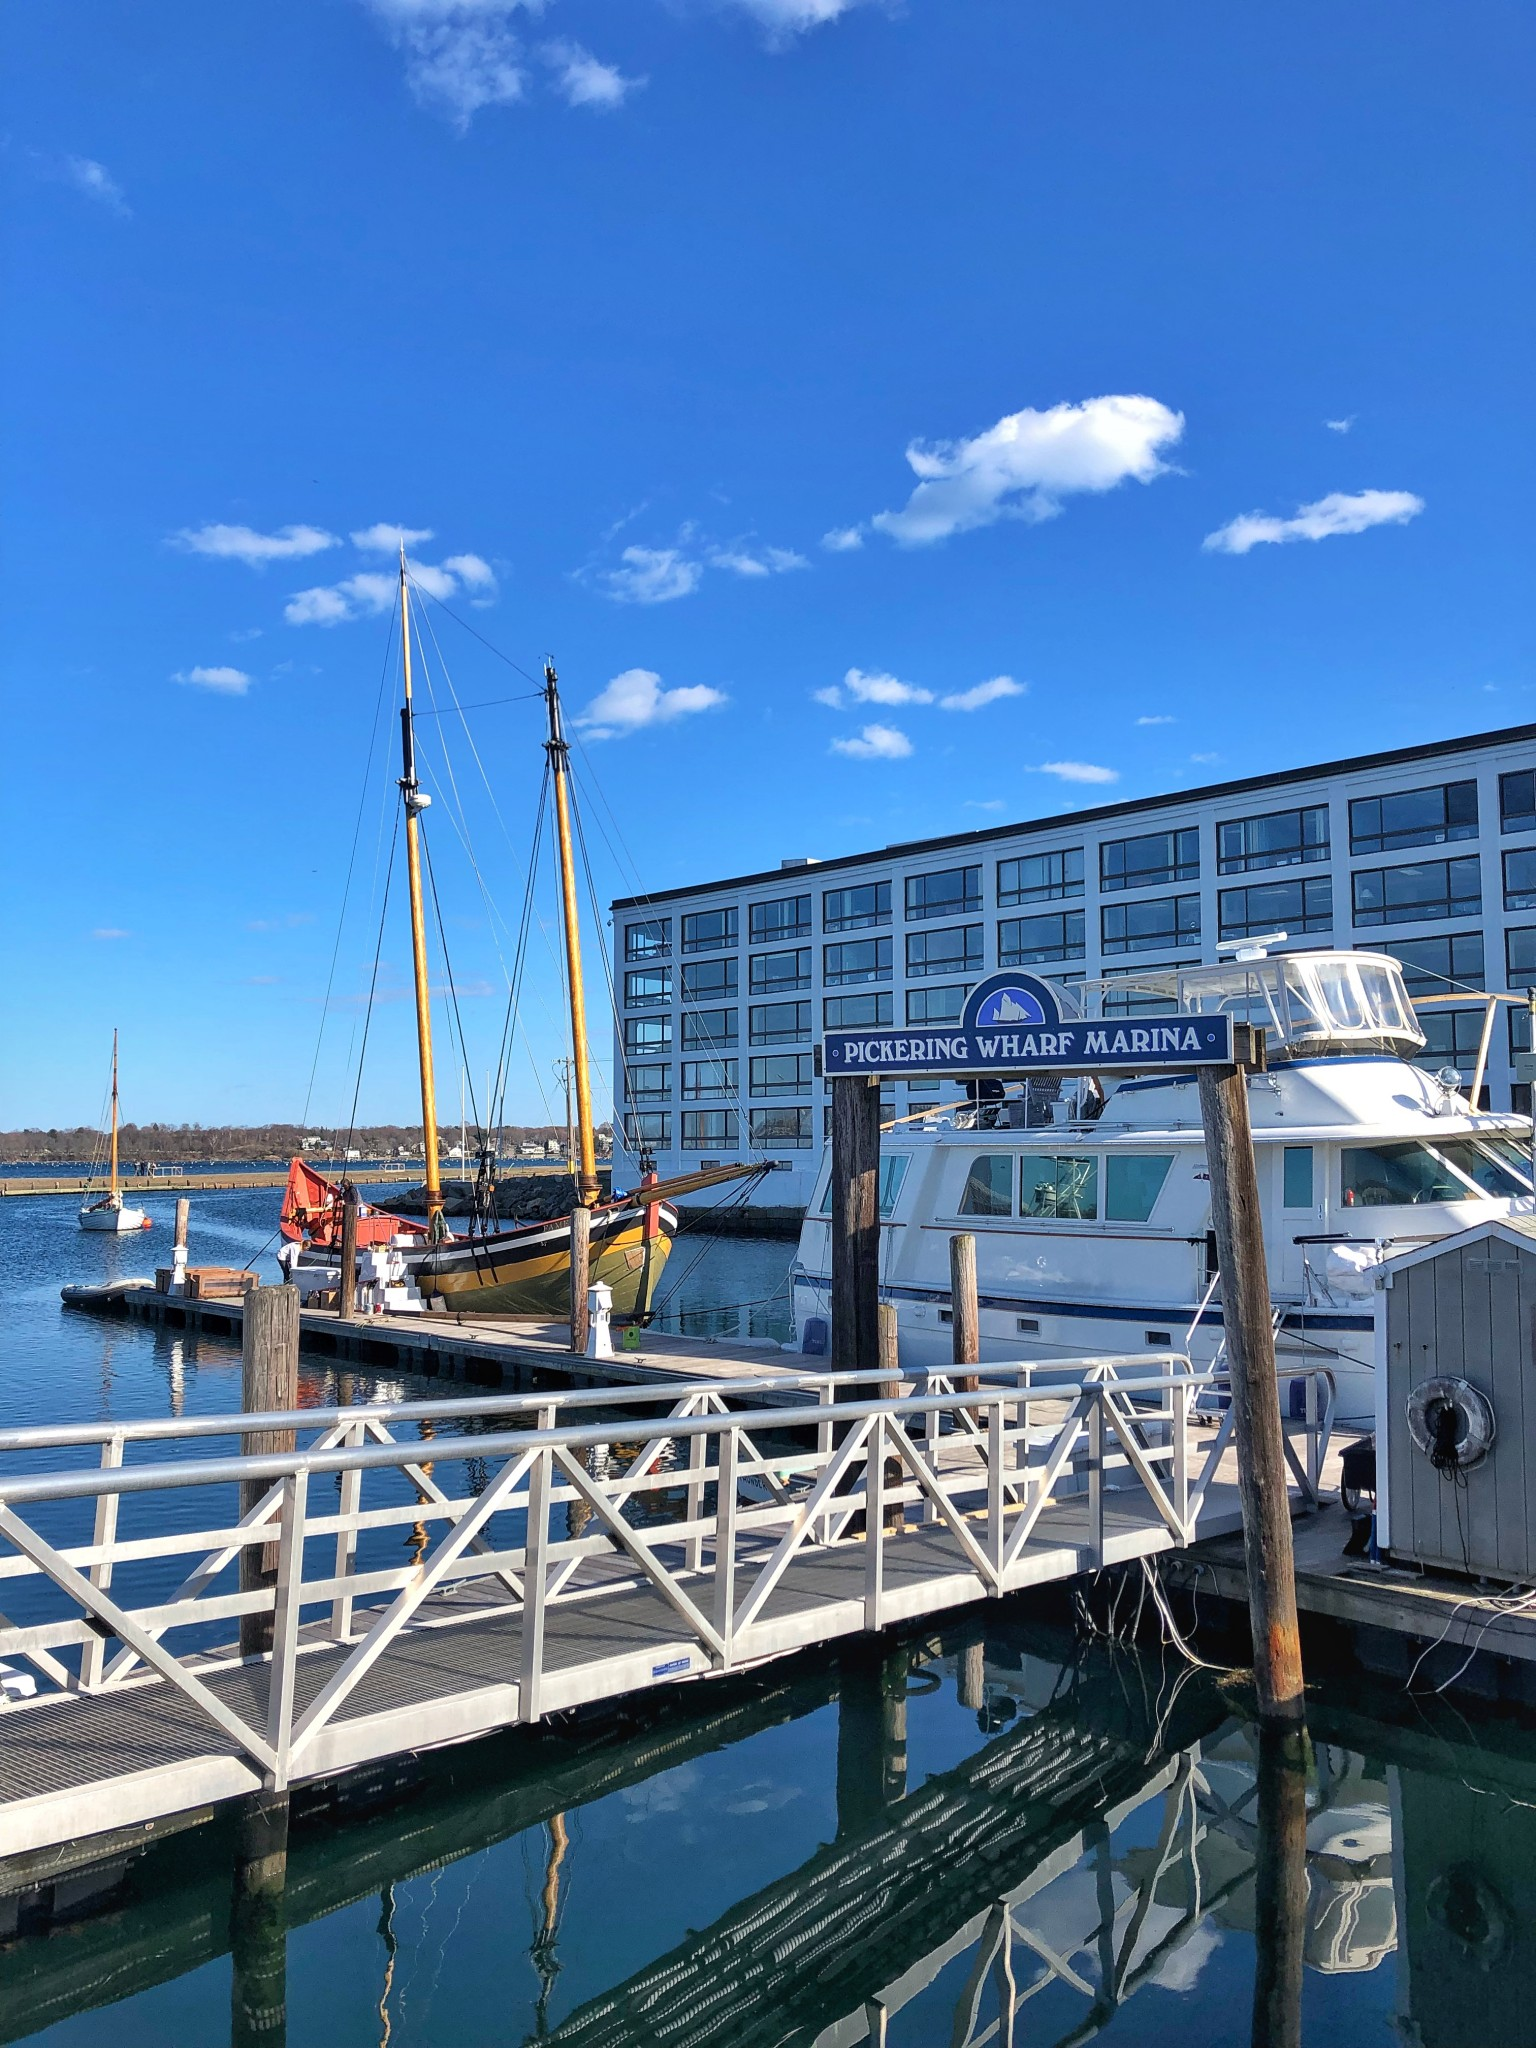 pickering wharf, salem, massachusetts, the-alyst.com